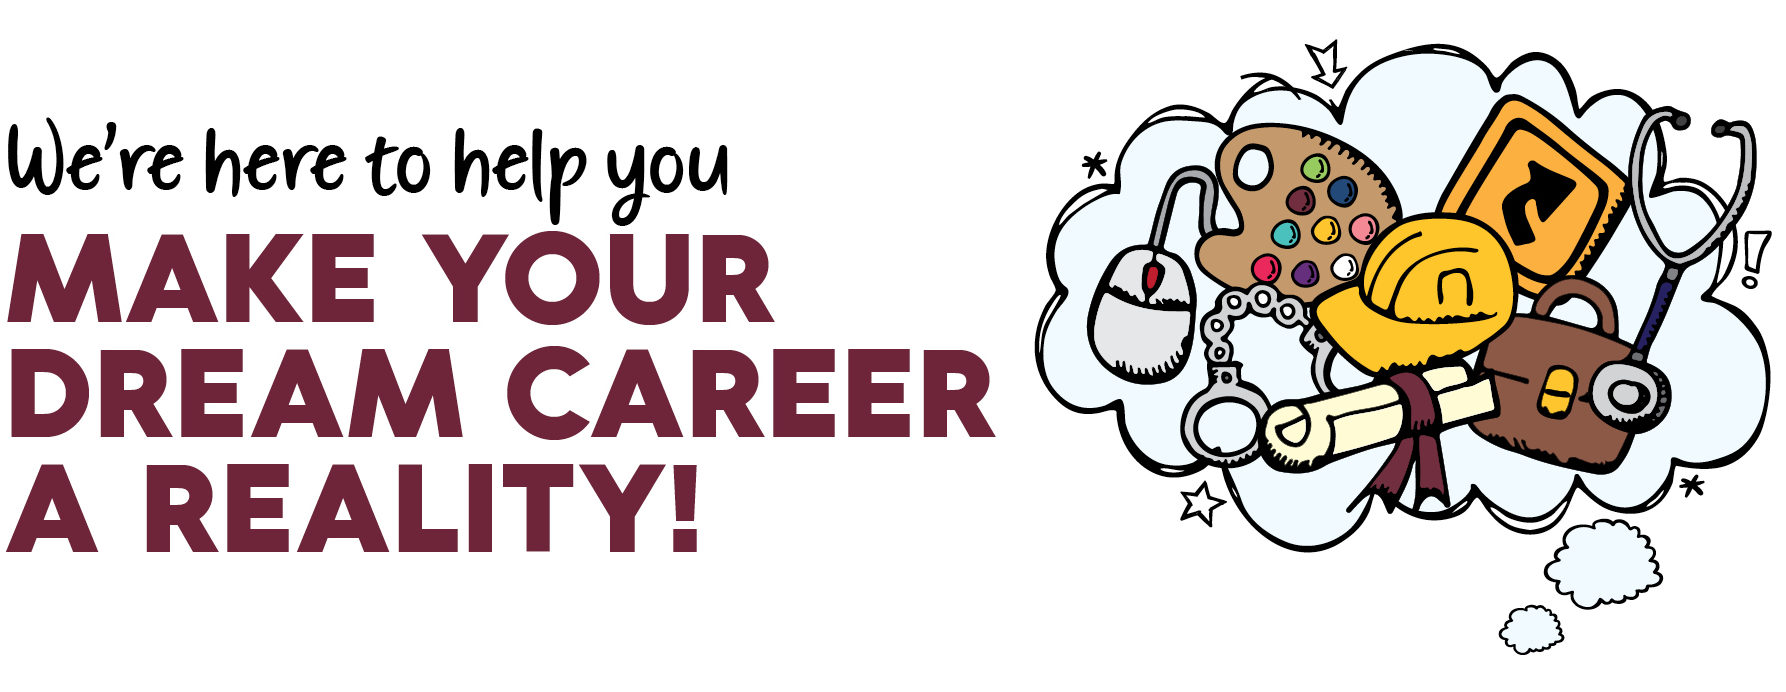 Make Your Dream Career a Reality